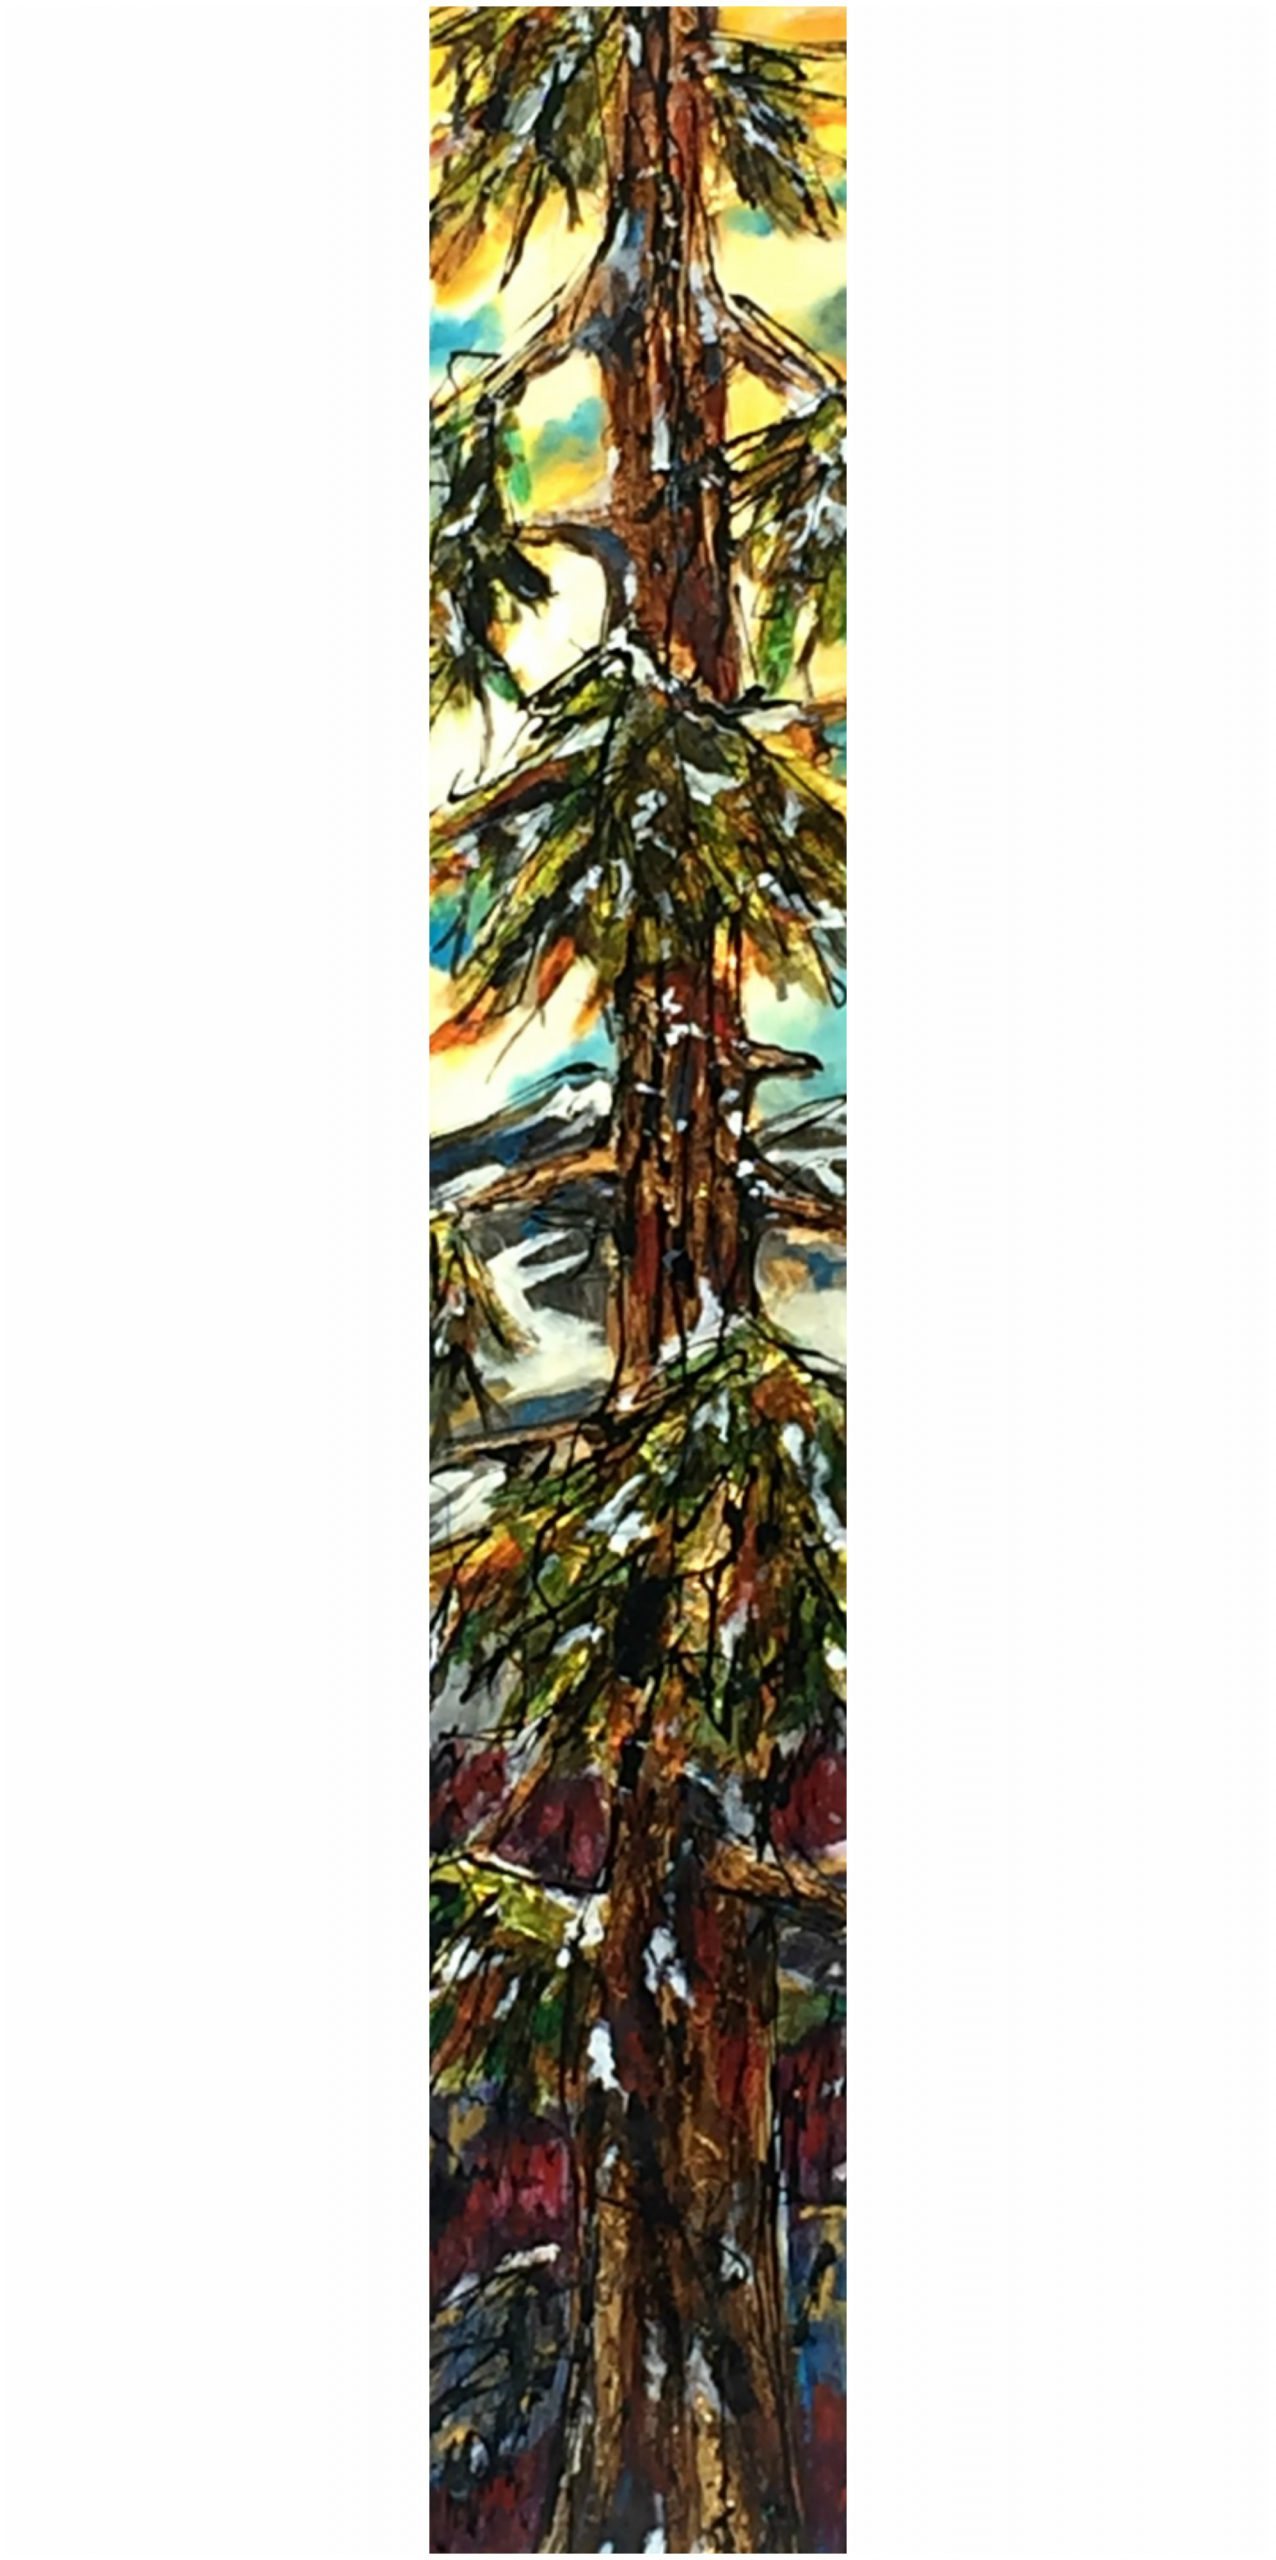 We Didn't Talk, mixed media tree painting by David Zimmerman   Effusion Art Gallery + Cast Glass Studio, Invermere BC